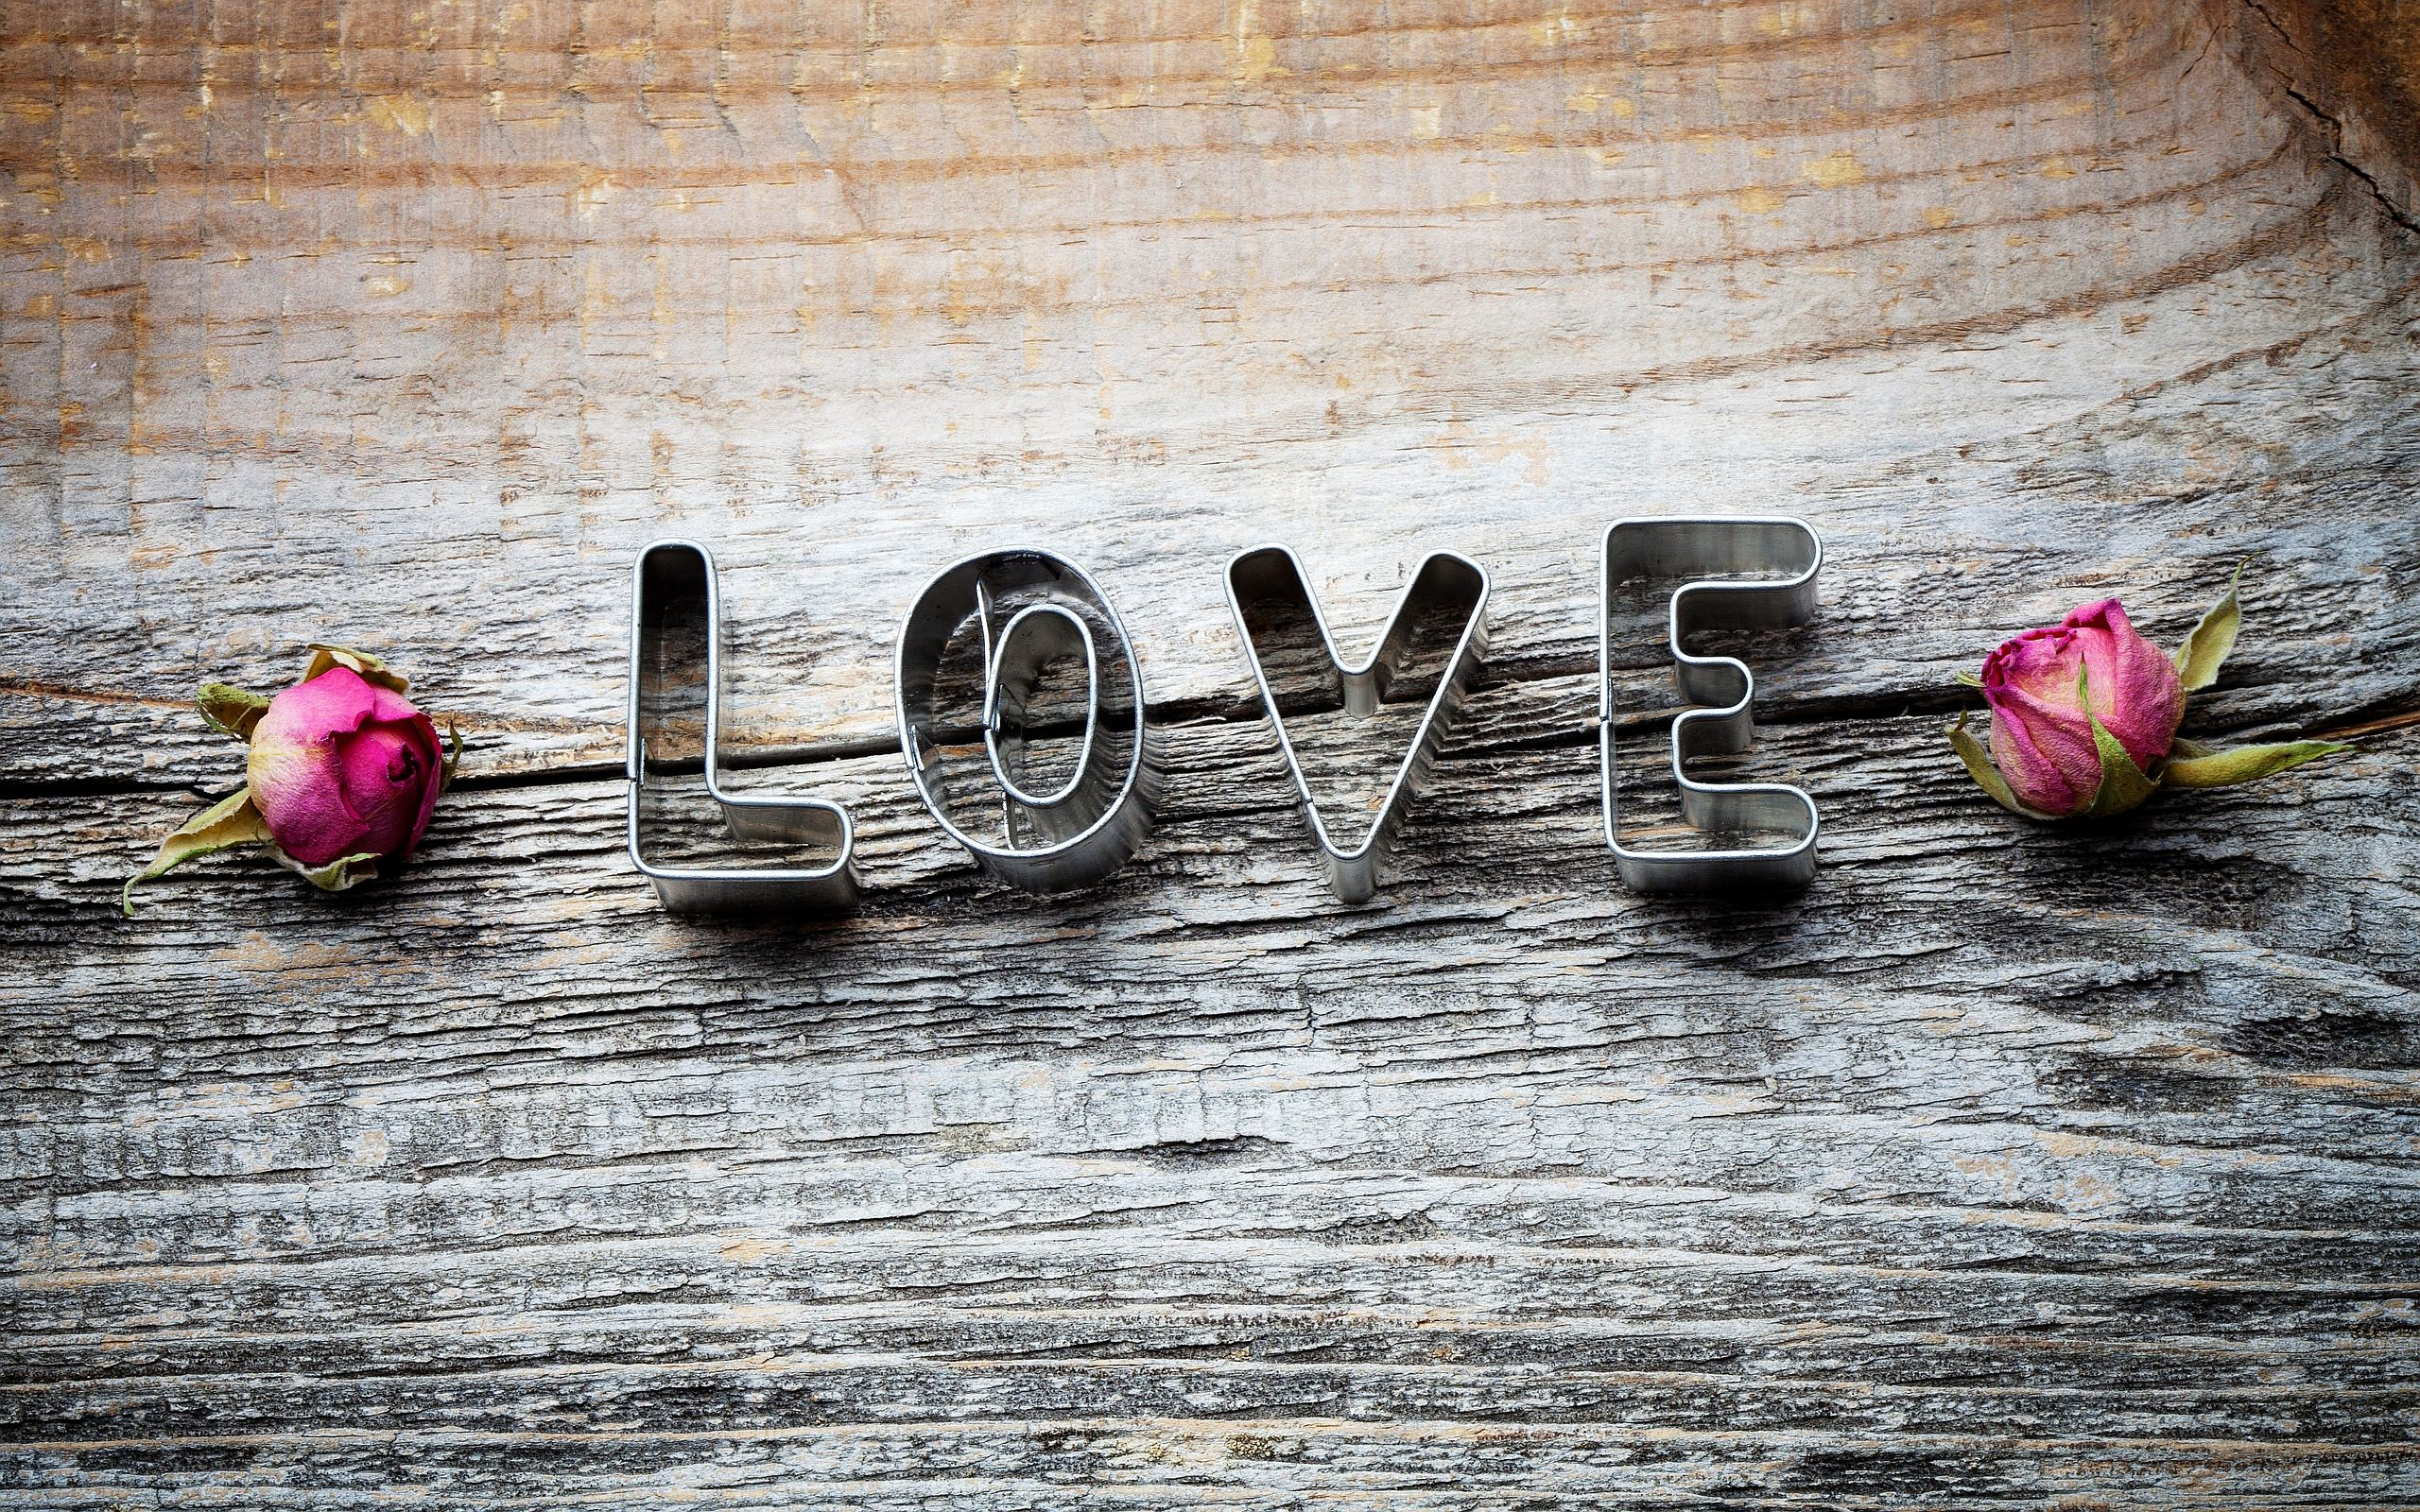 Love Wallpaper Hd Tumblr : Love Background Pictures - WallpaperSafari